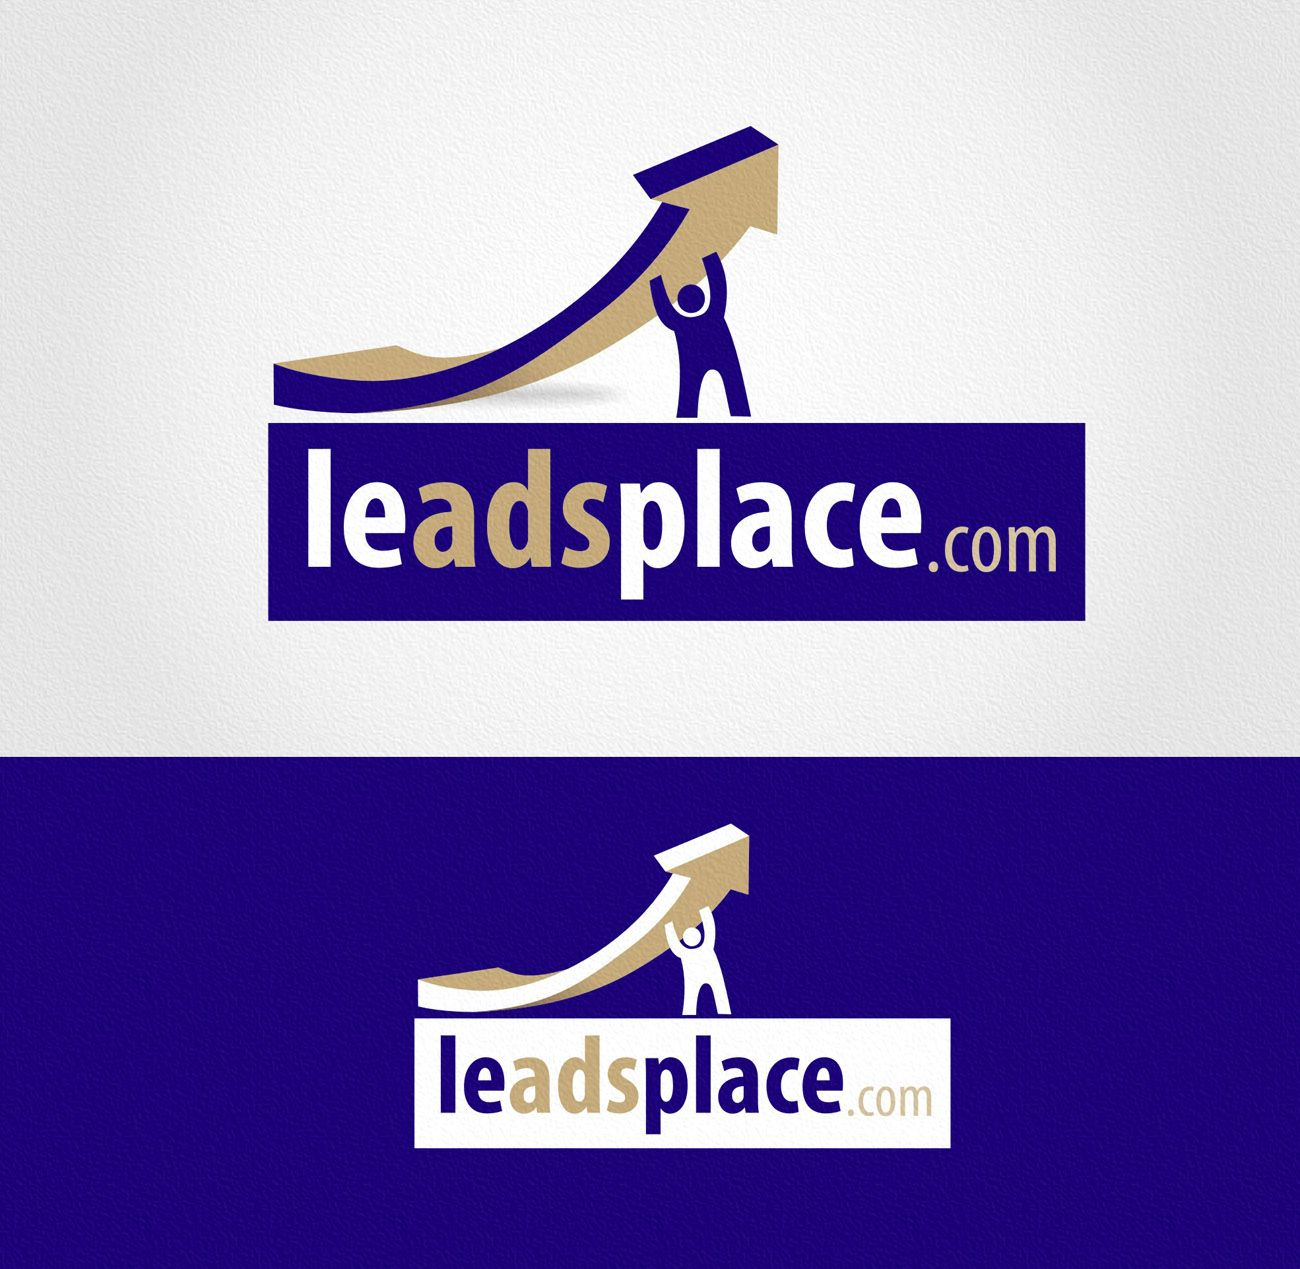 leadsplace.com - логотип - дизайнер Zheravin